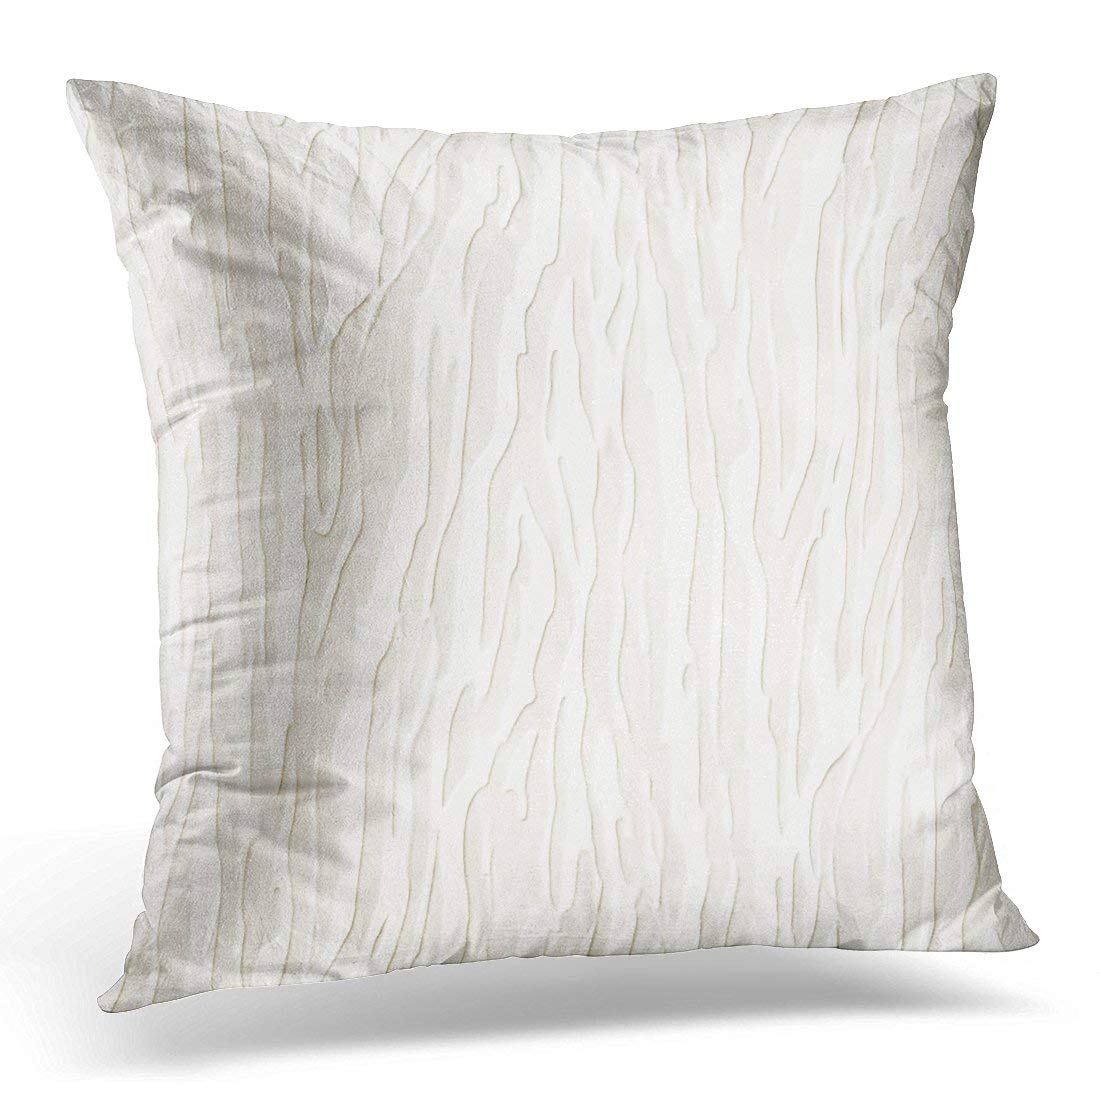 arhome concrete gray wall white 3d stone abstract pillow case cushion cover 16x16 inches